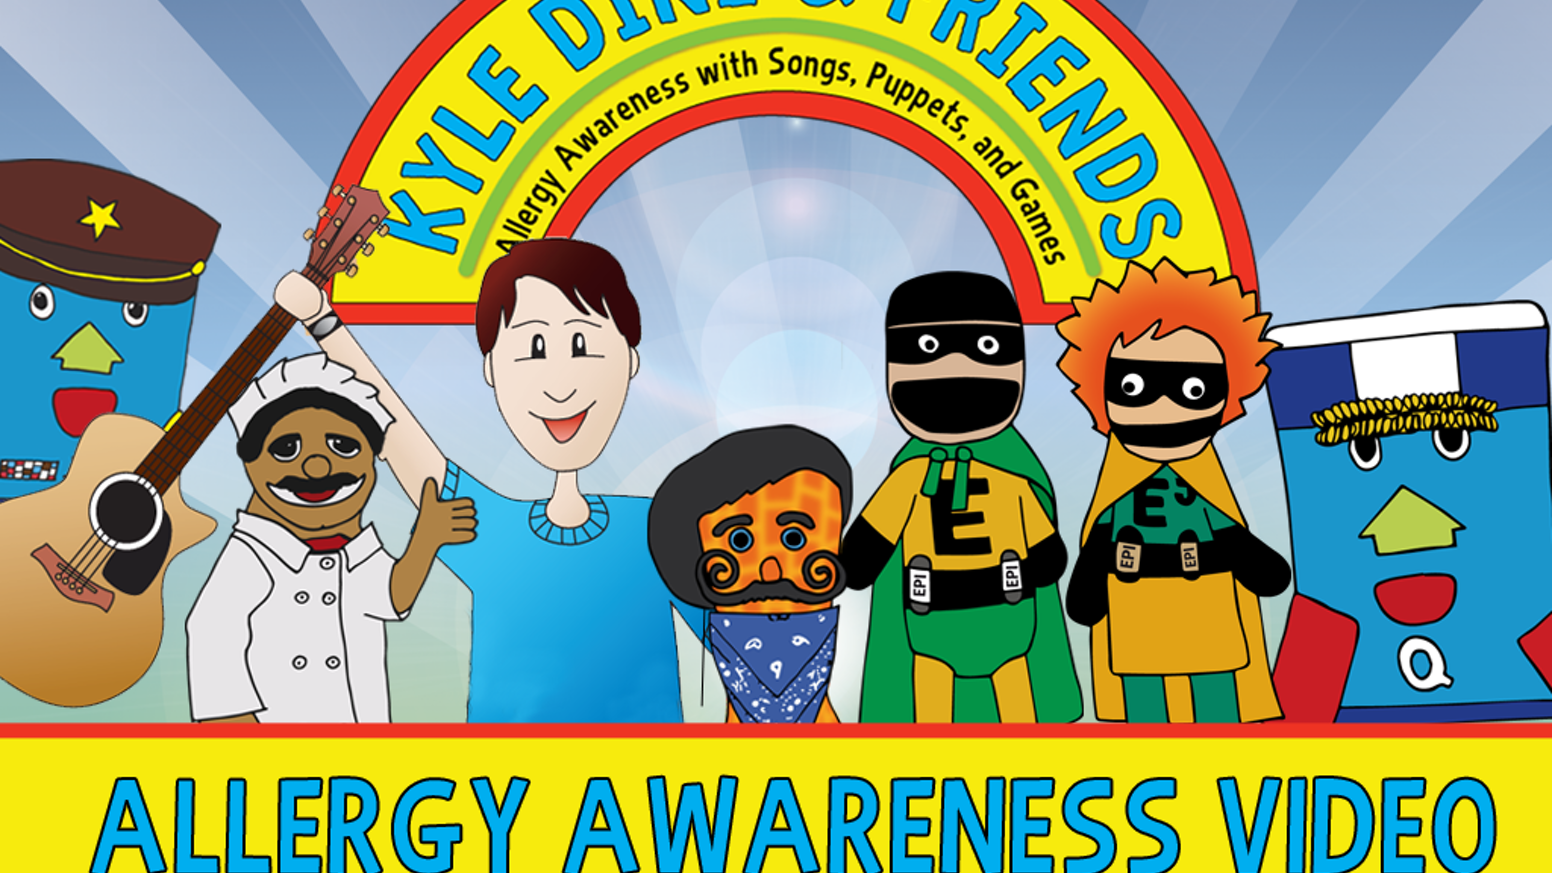 A video to help elementary schools educate students about food allergies through music, puppets and games!